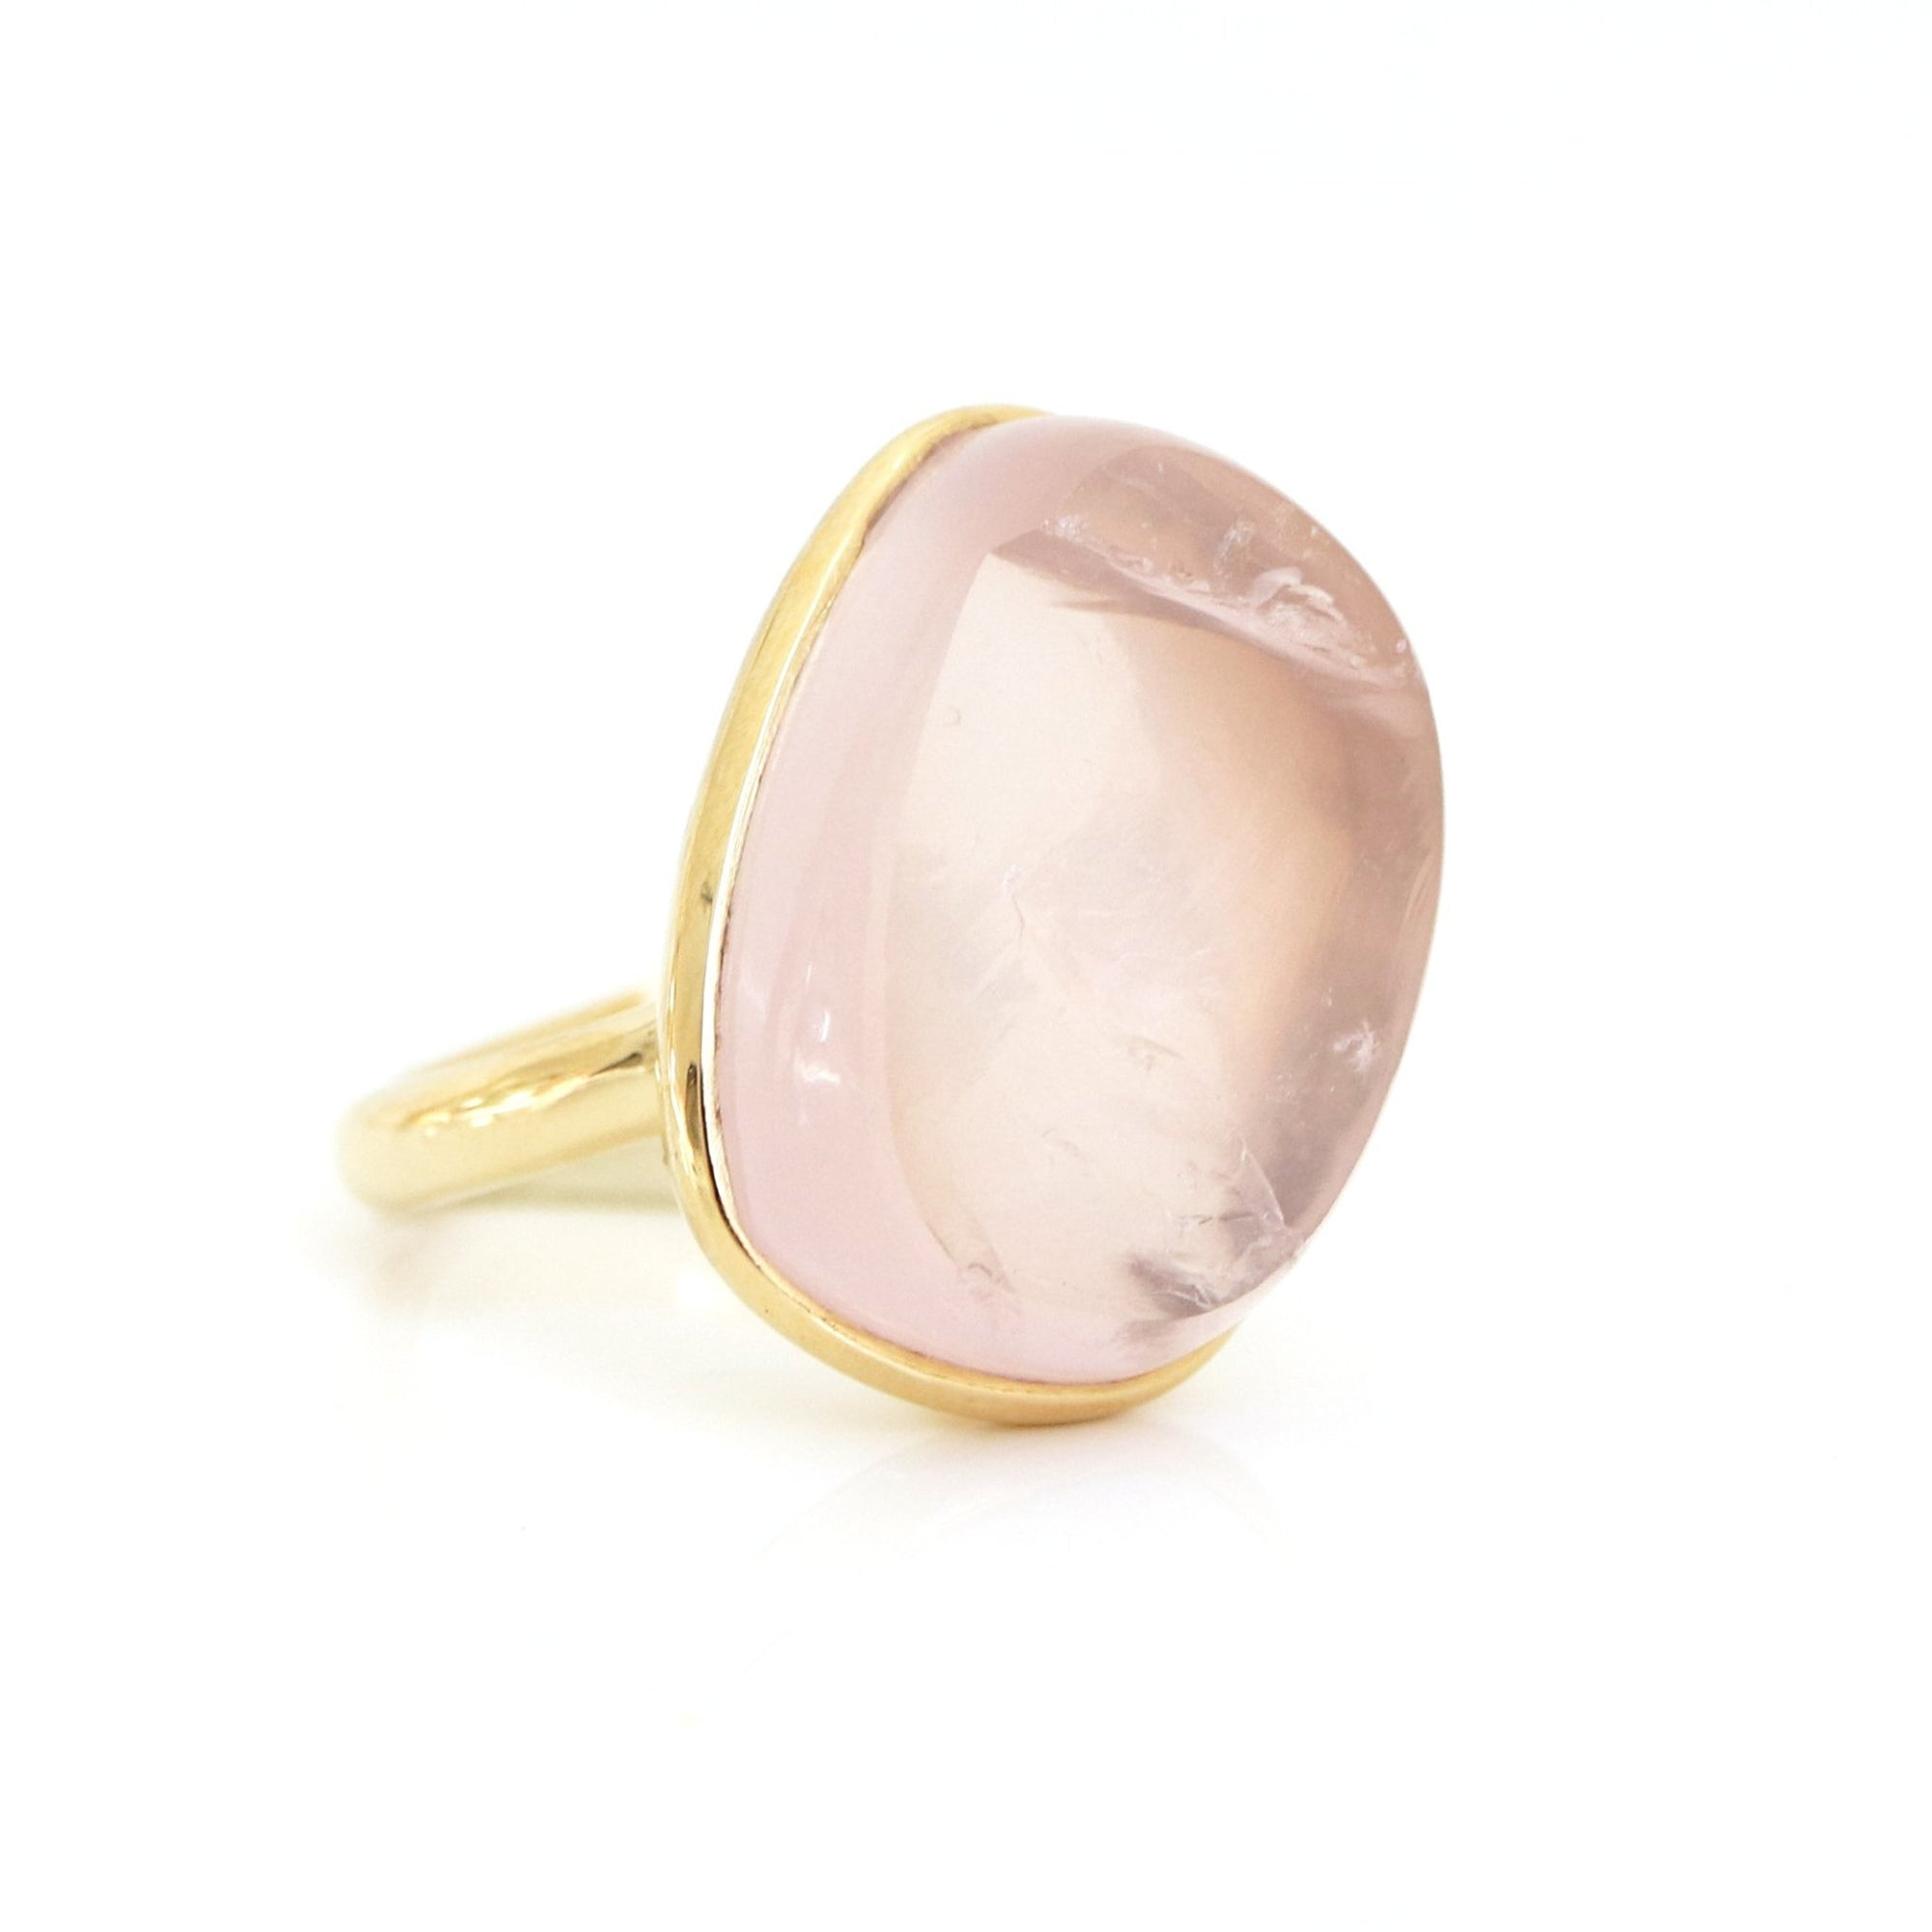 DARING RING - RAW PINK QUARTZ & GOLD - SO PRETTY CARA COTTER